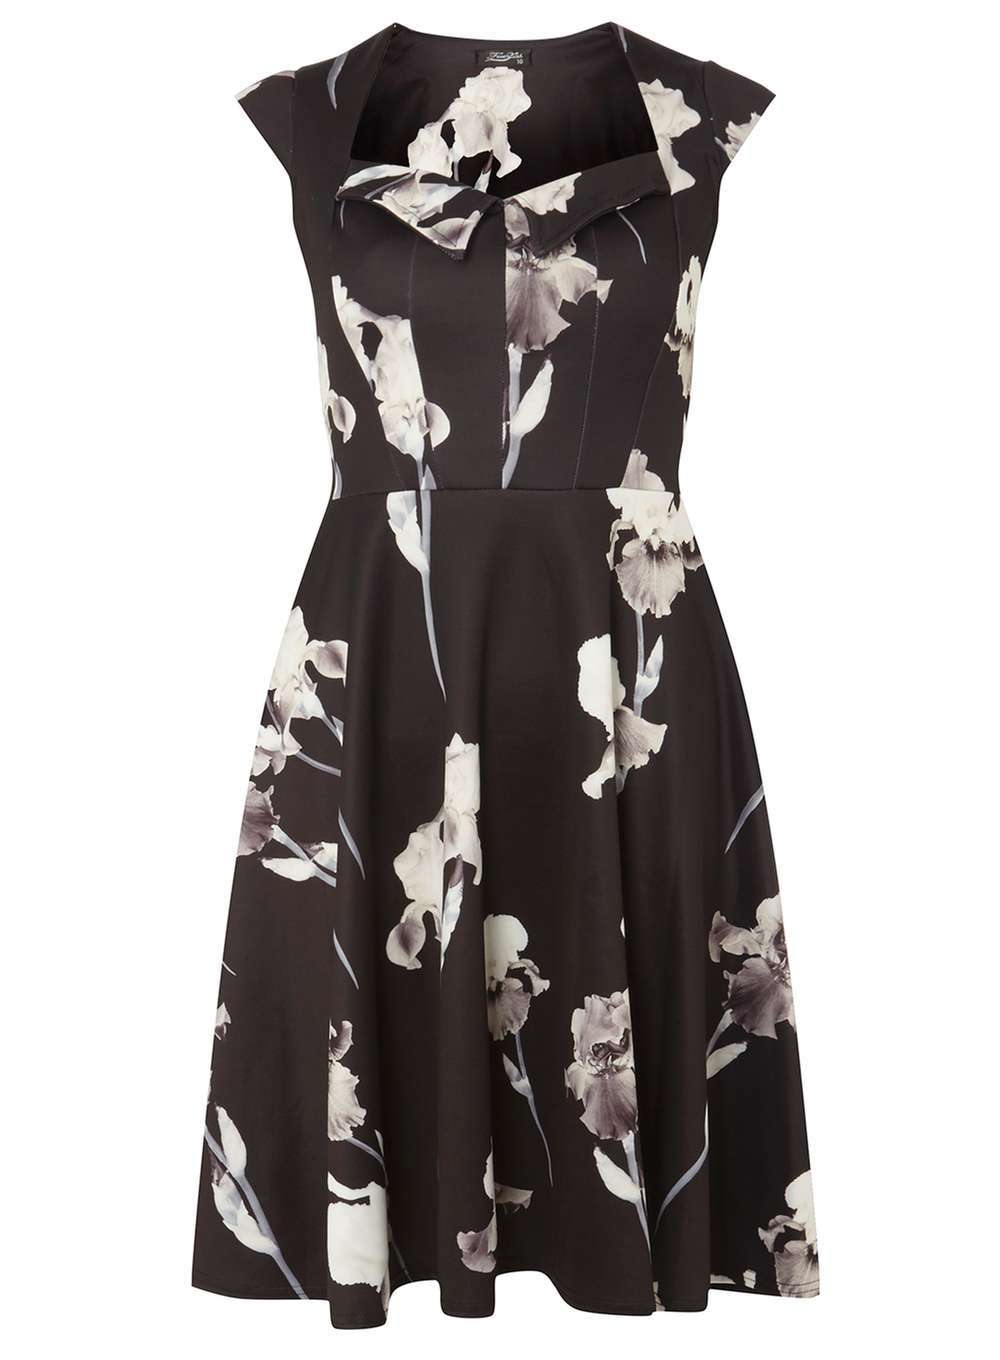 Womens **Feverfish Black And White Printed Dress Black - neckline: v-neck; sleeve style: capped; secondary colour: white; predominant colour: black; occasions: evening; length: on the knee; fit: fitted at waist & bust; style: fit & flare; fibres: polyester/polyamide - stretch; sleeve length: short sleeve; pattern type: fabric; pattern: patterned/print; texture group: jersey - stretchy/drapey; multicoloured: multicoloured; season: a/w 2016